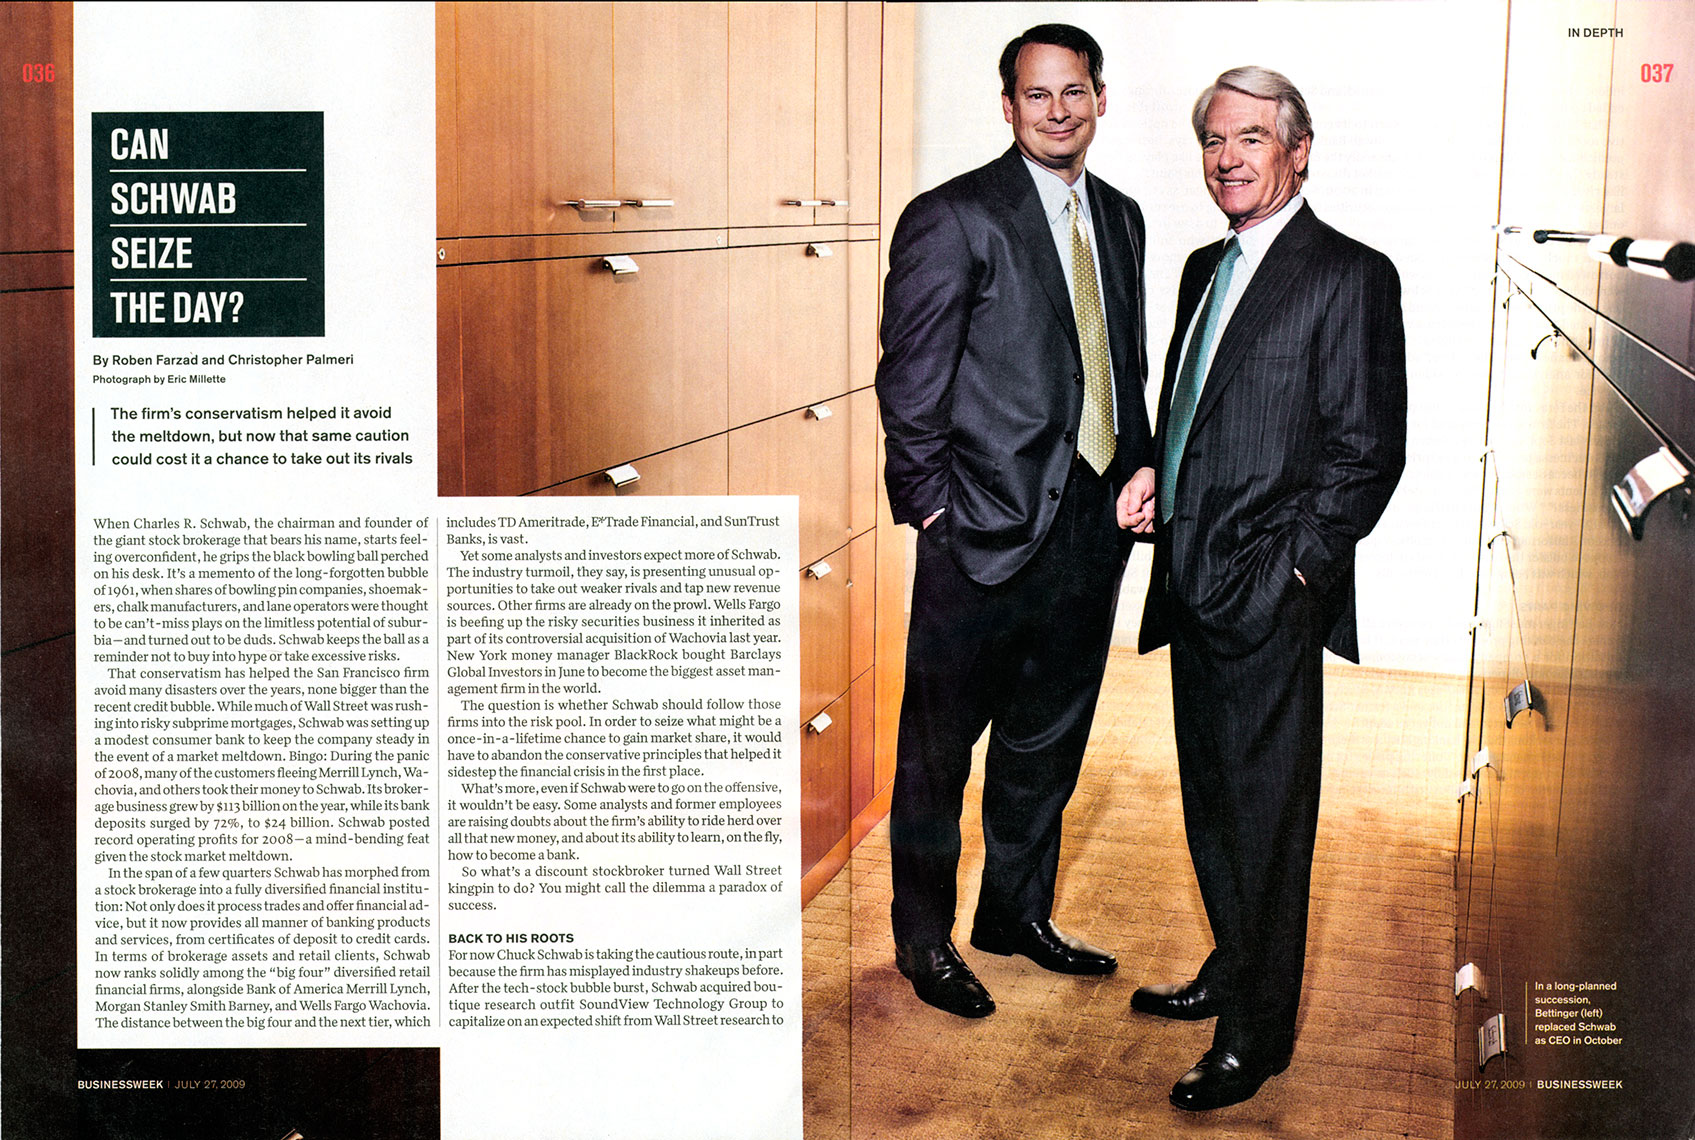 charles-schwab-walt-bettinger-businessweek-story.jpg